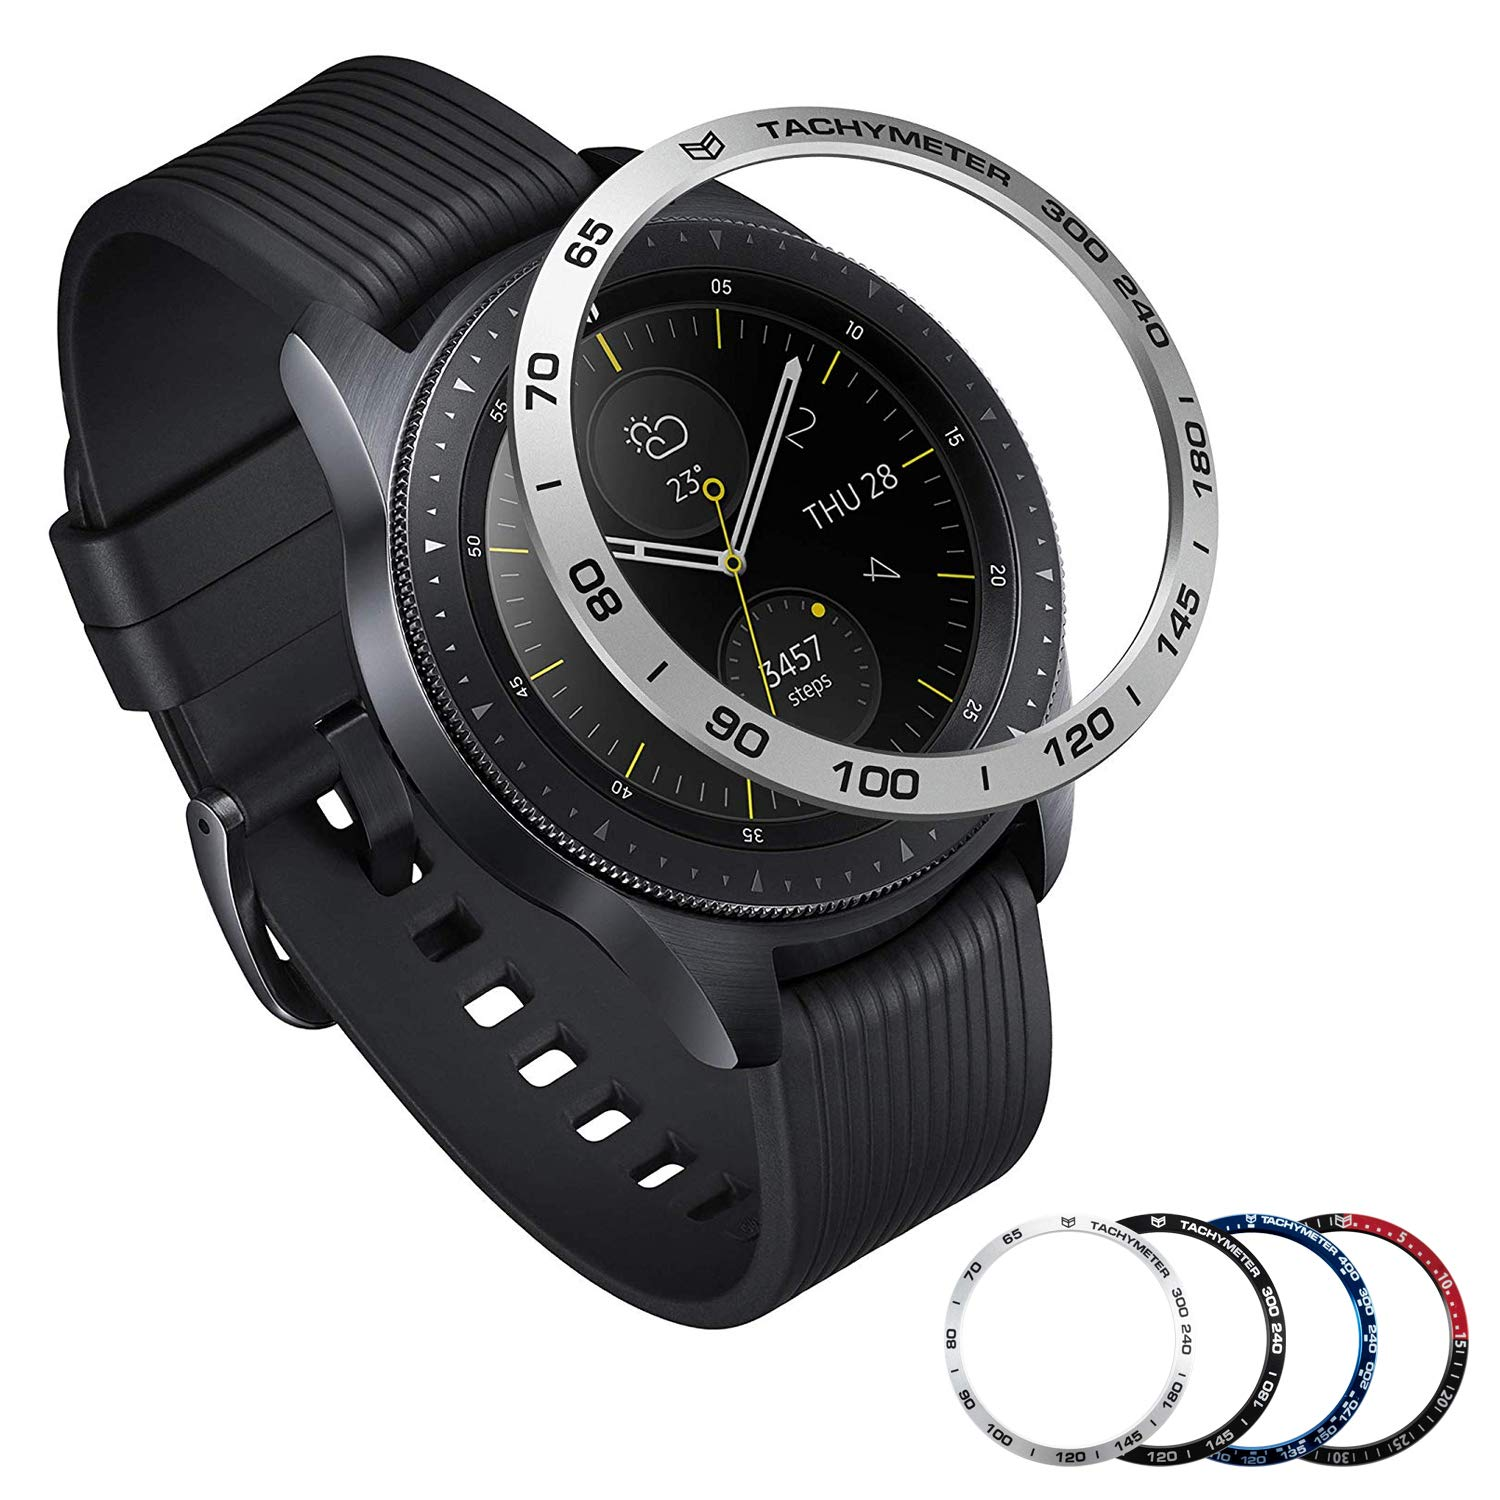 [Aluminum] Galaxy Watch 46mm Bezel Styling, Galaxy Gear S3 Frontier & Classic Bezel Ring Adhesive Cover Anti Scratch Aluminium Protection Tachymeter, Design for The Galaxy Watch Accessories - Silver by Yawenner